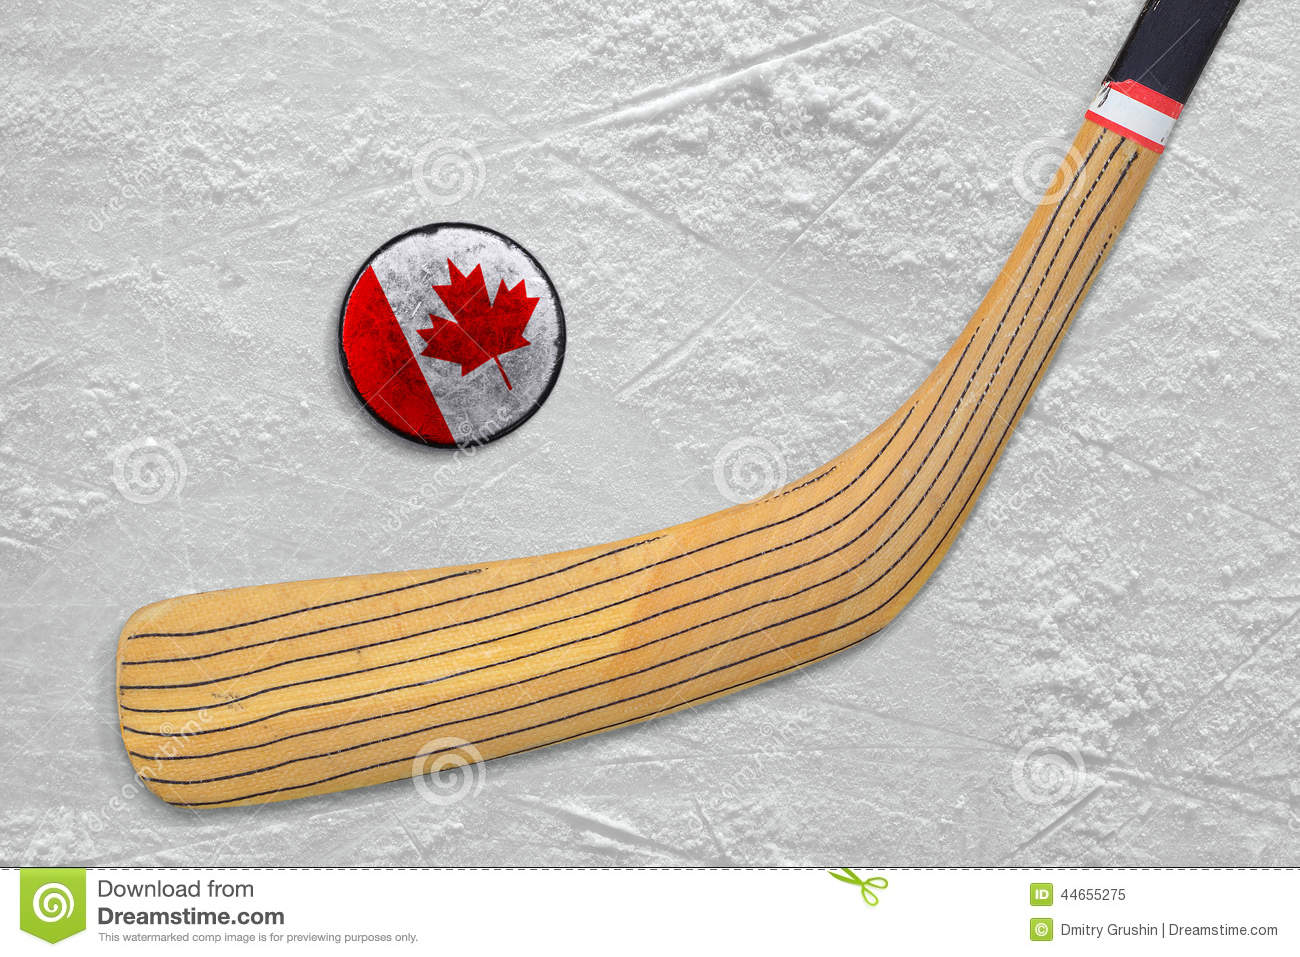 Hockey Stick And Puck On The Canadian Hockey Rink Stock Image